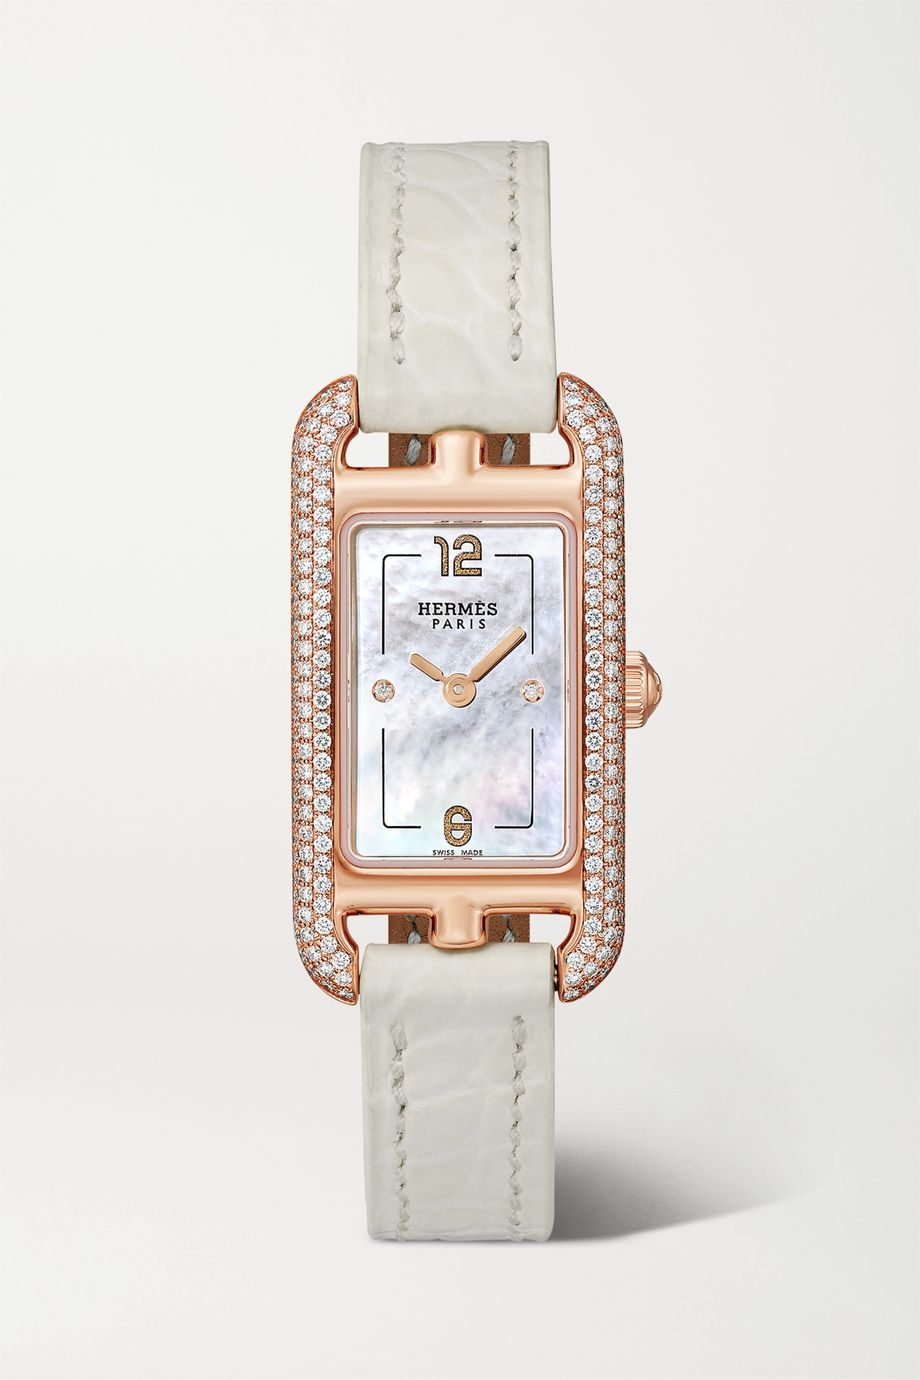 Hermès Timepieces Nantucket 17mm very small 18-karat rose gold, alligator, mother-of-pearl and diamond watch